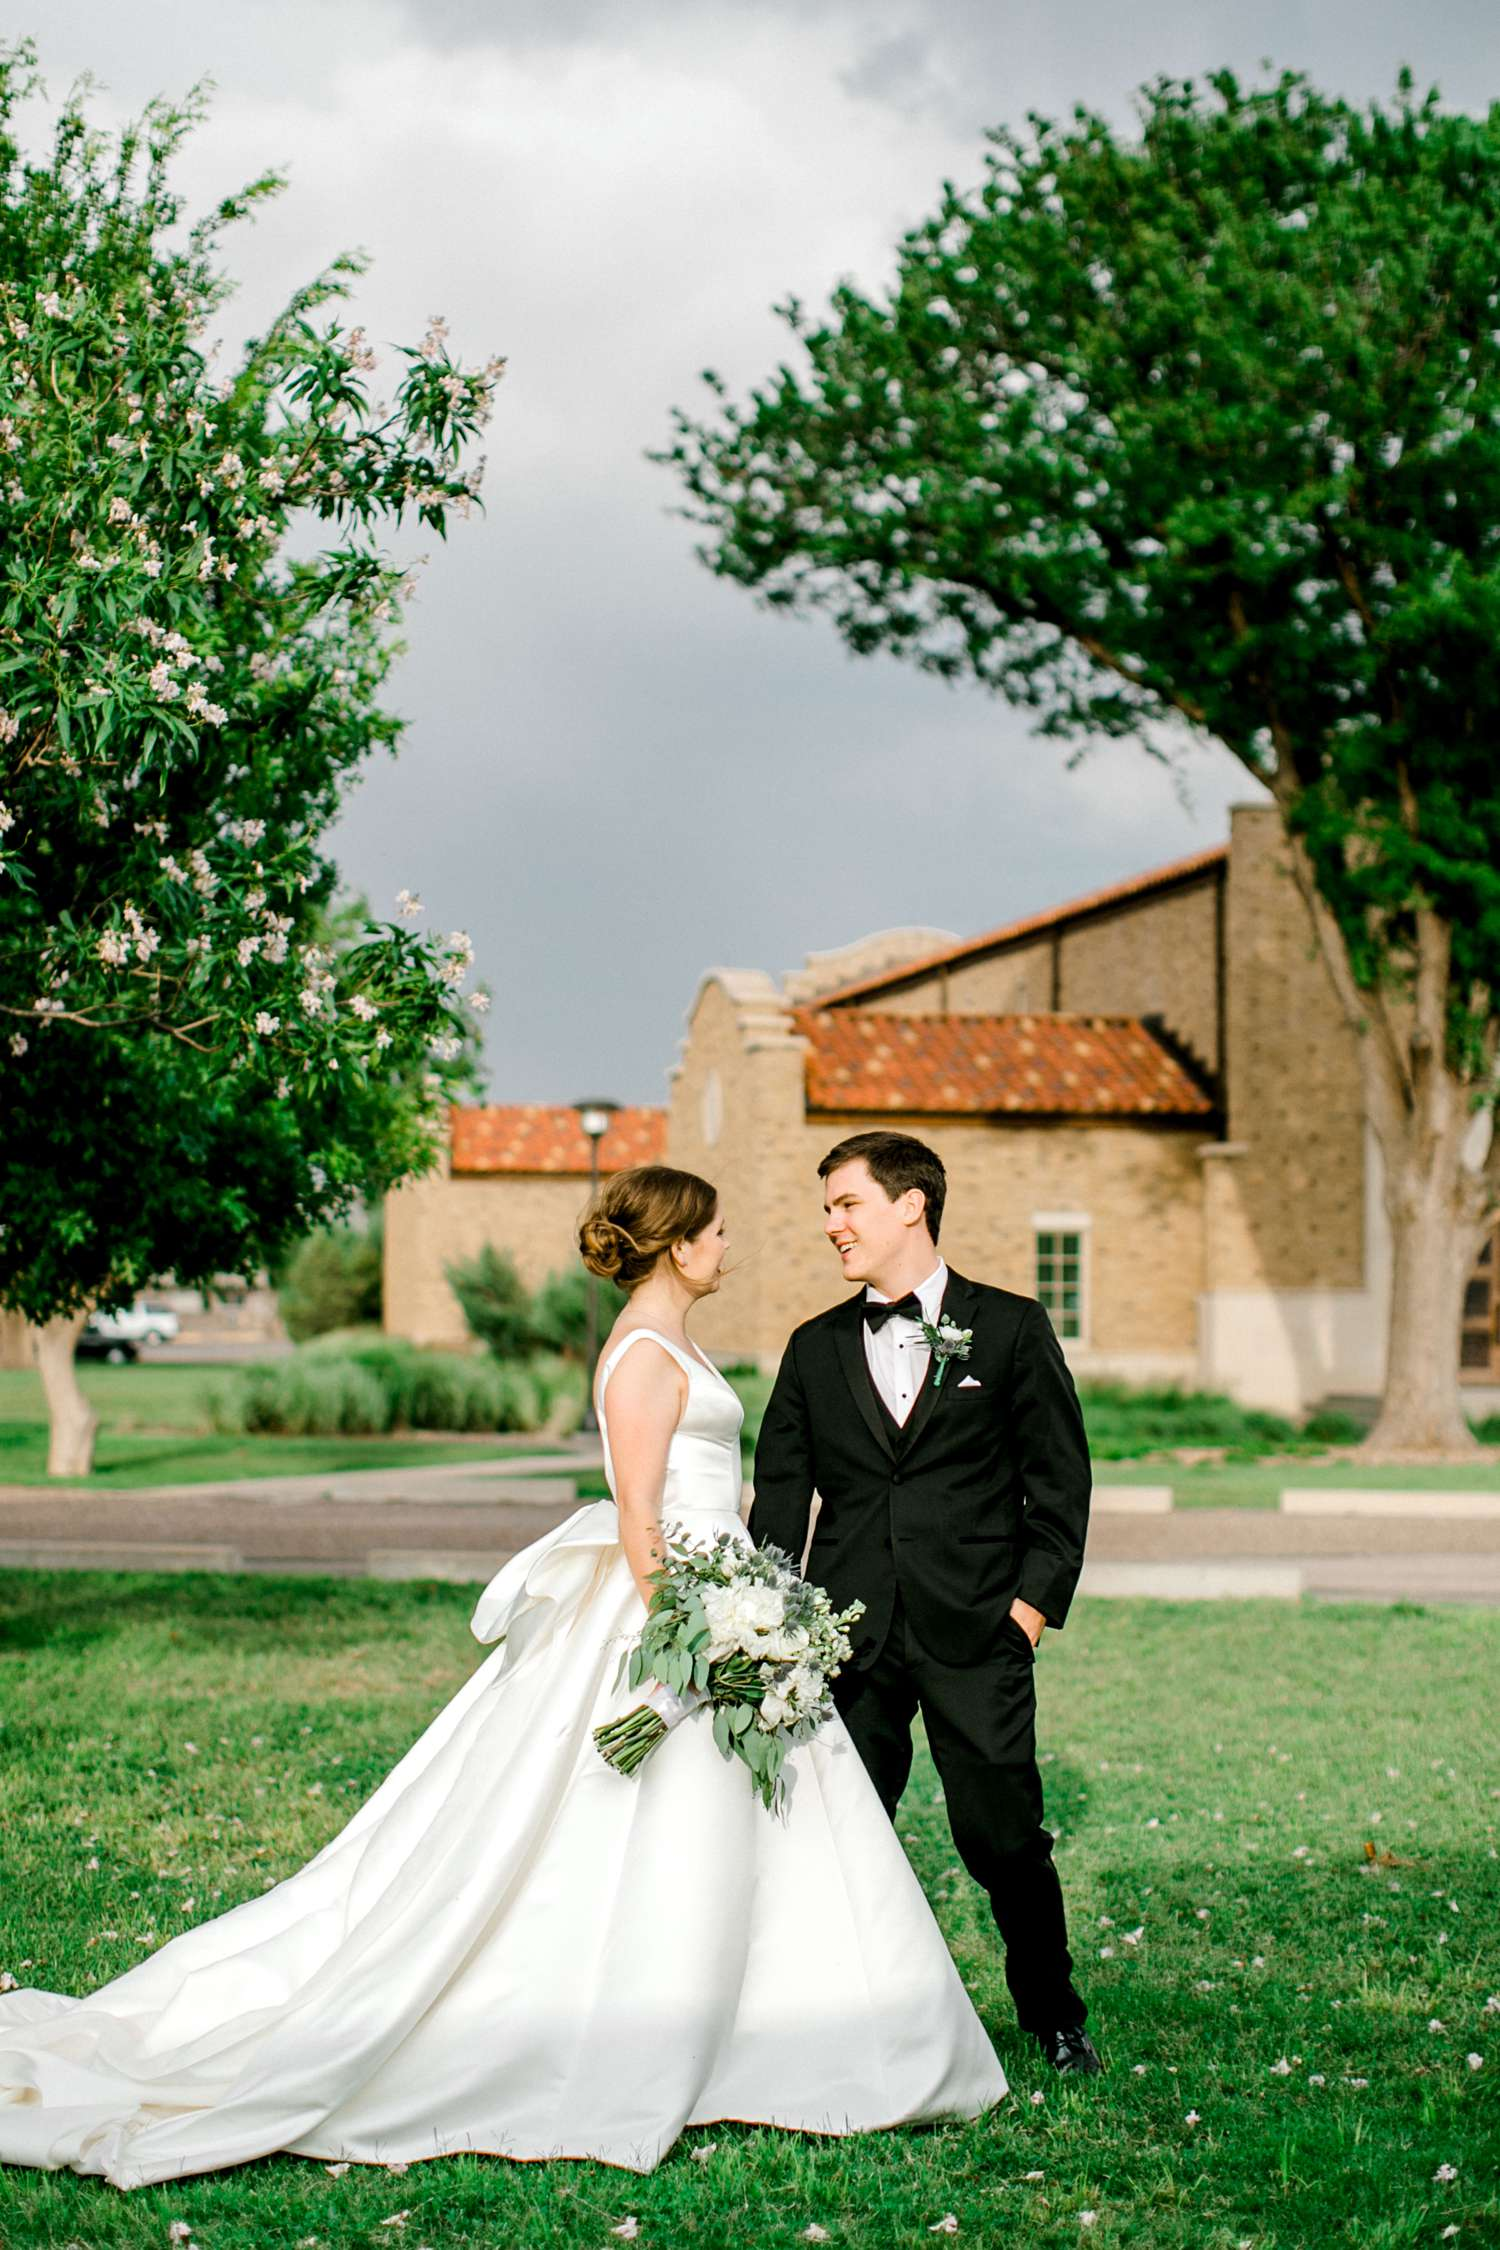 HANNAH+CRAIG+CHILDS+TEXAS+TECH+WEDDING+ALLEEJ+LUBBOCK+PHOTOGRAPHER_0113.jpg